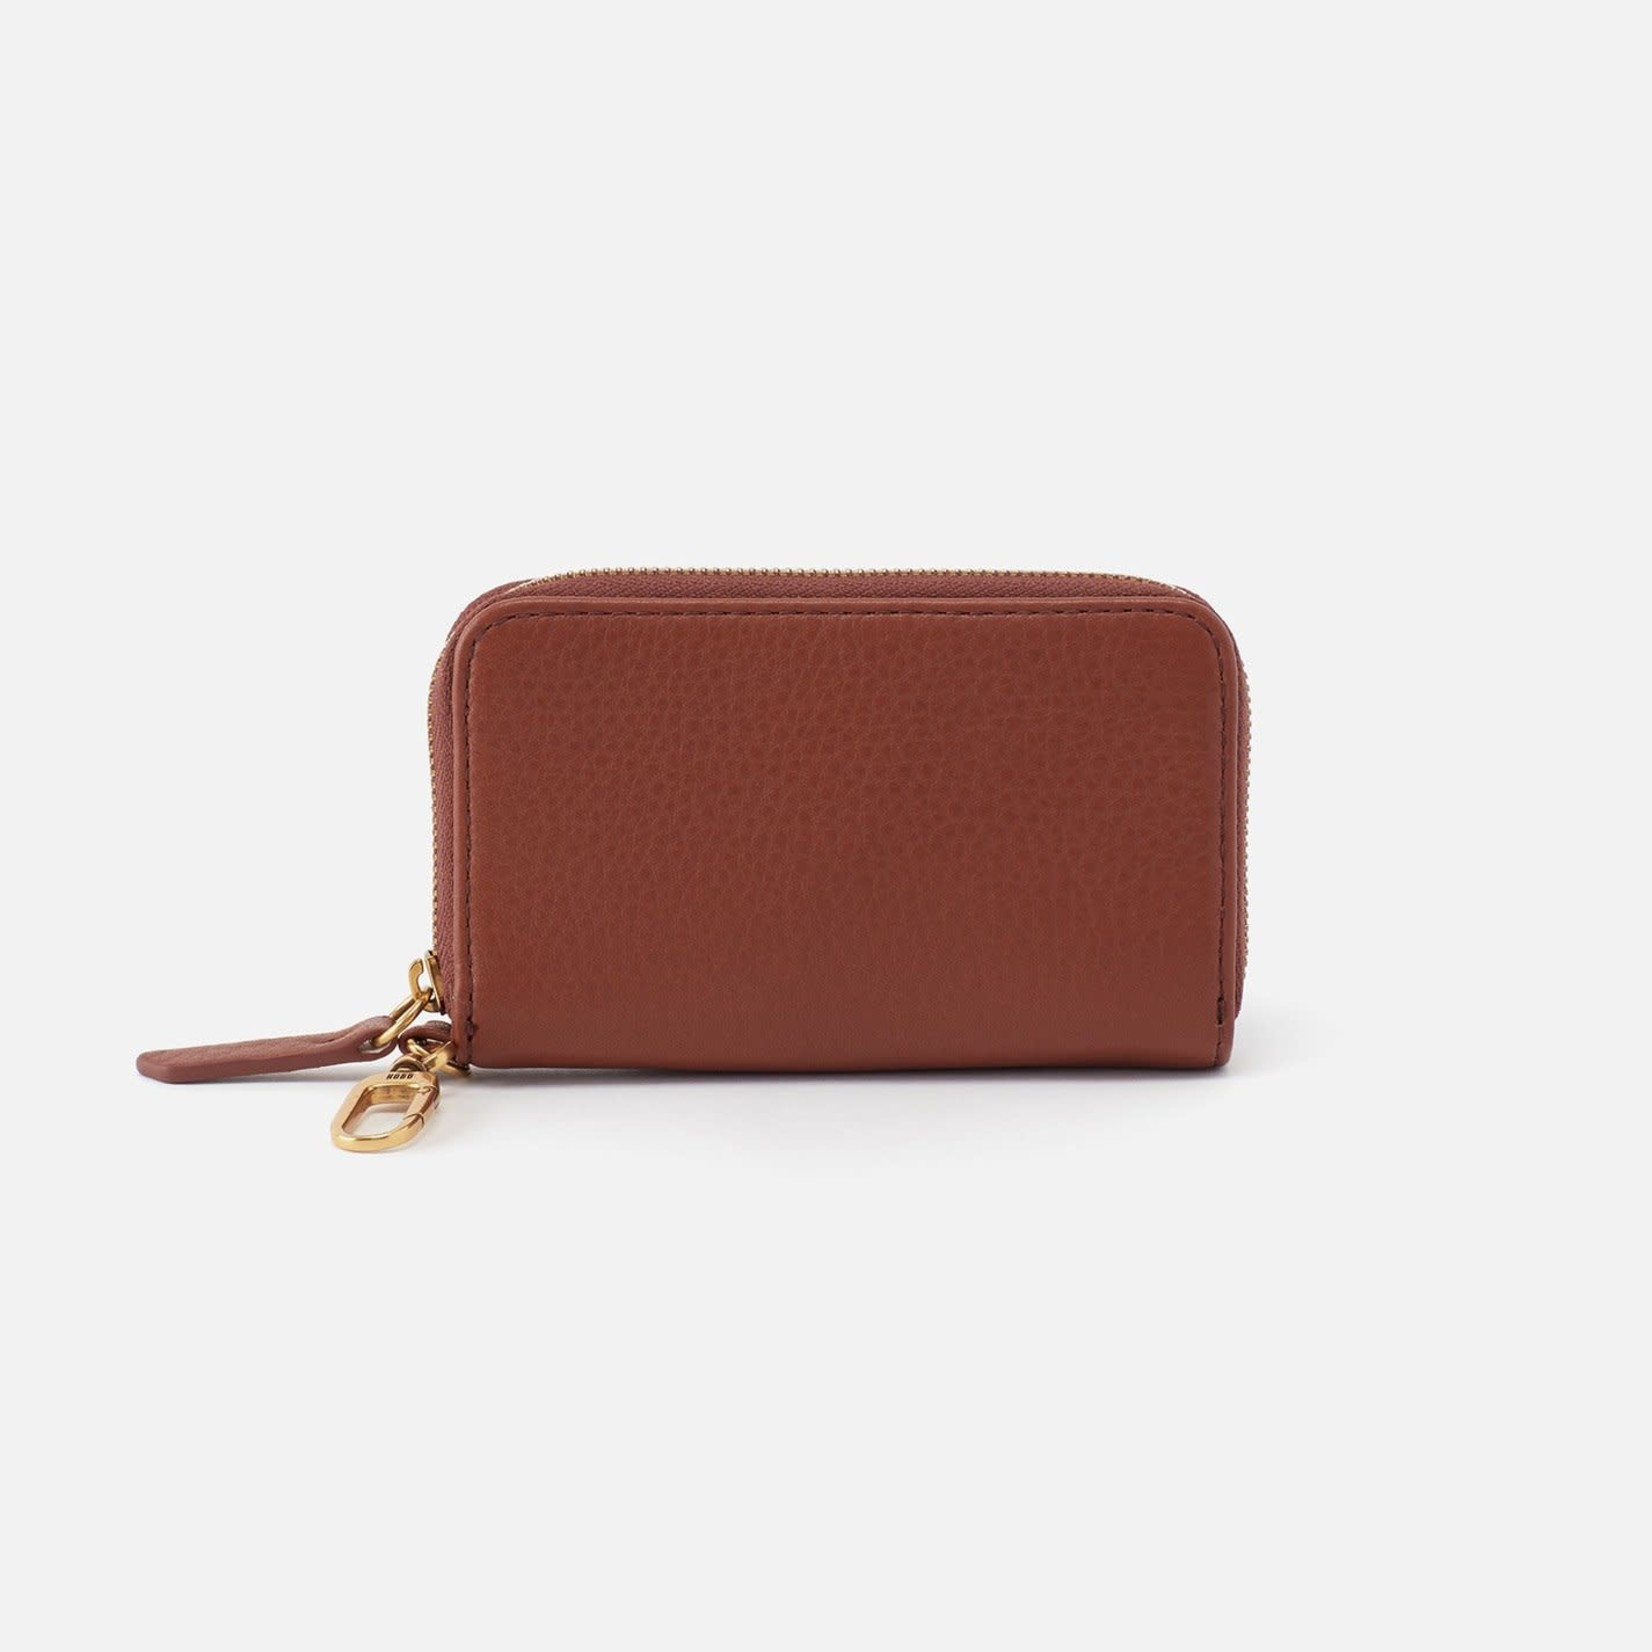 HOBO Move Toffee Soft Leather Clip Wallet